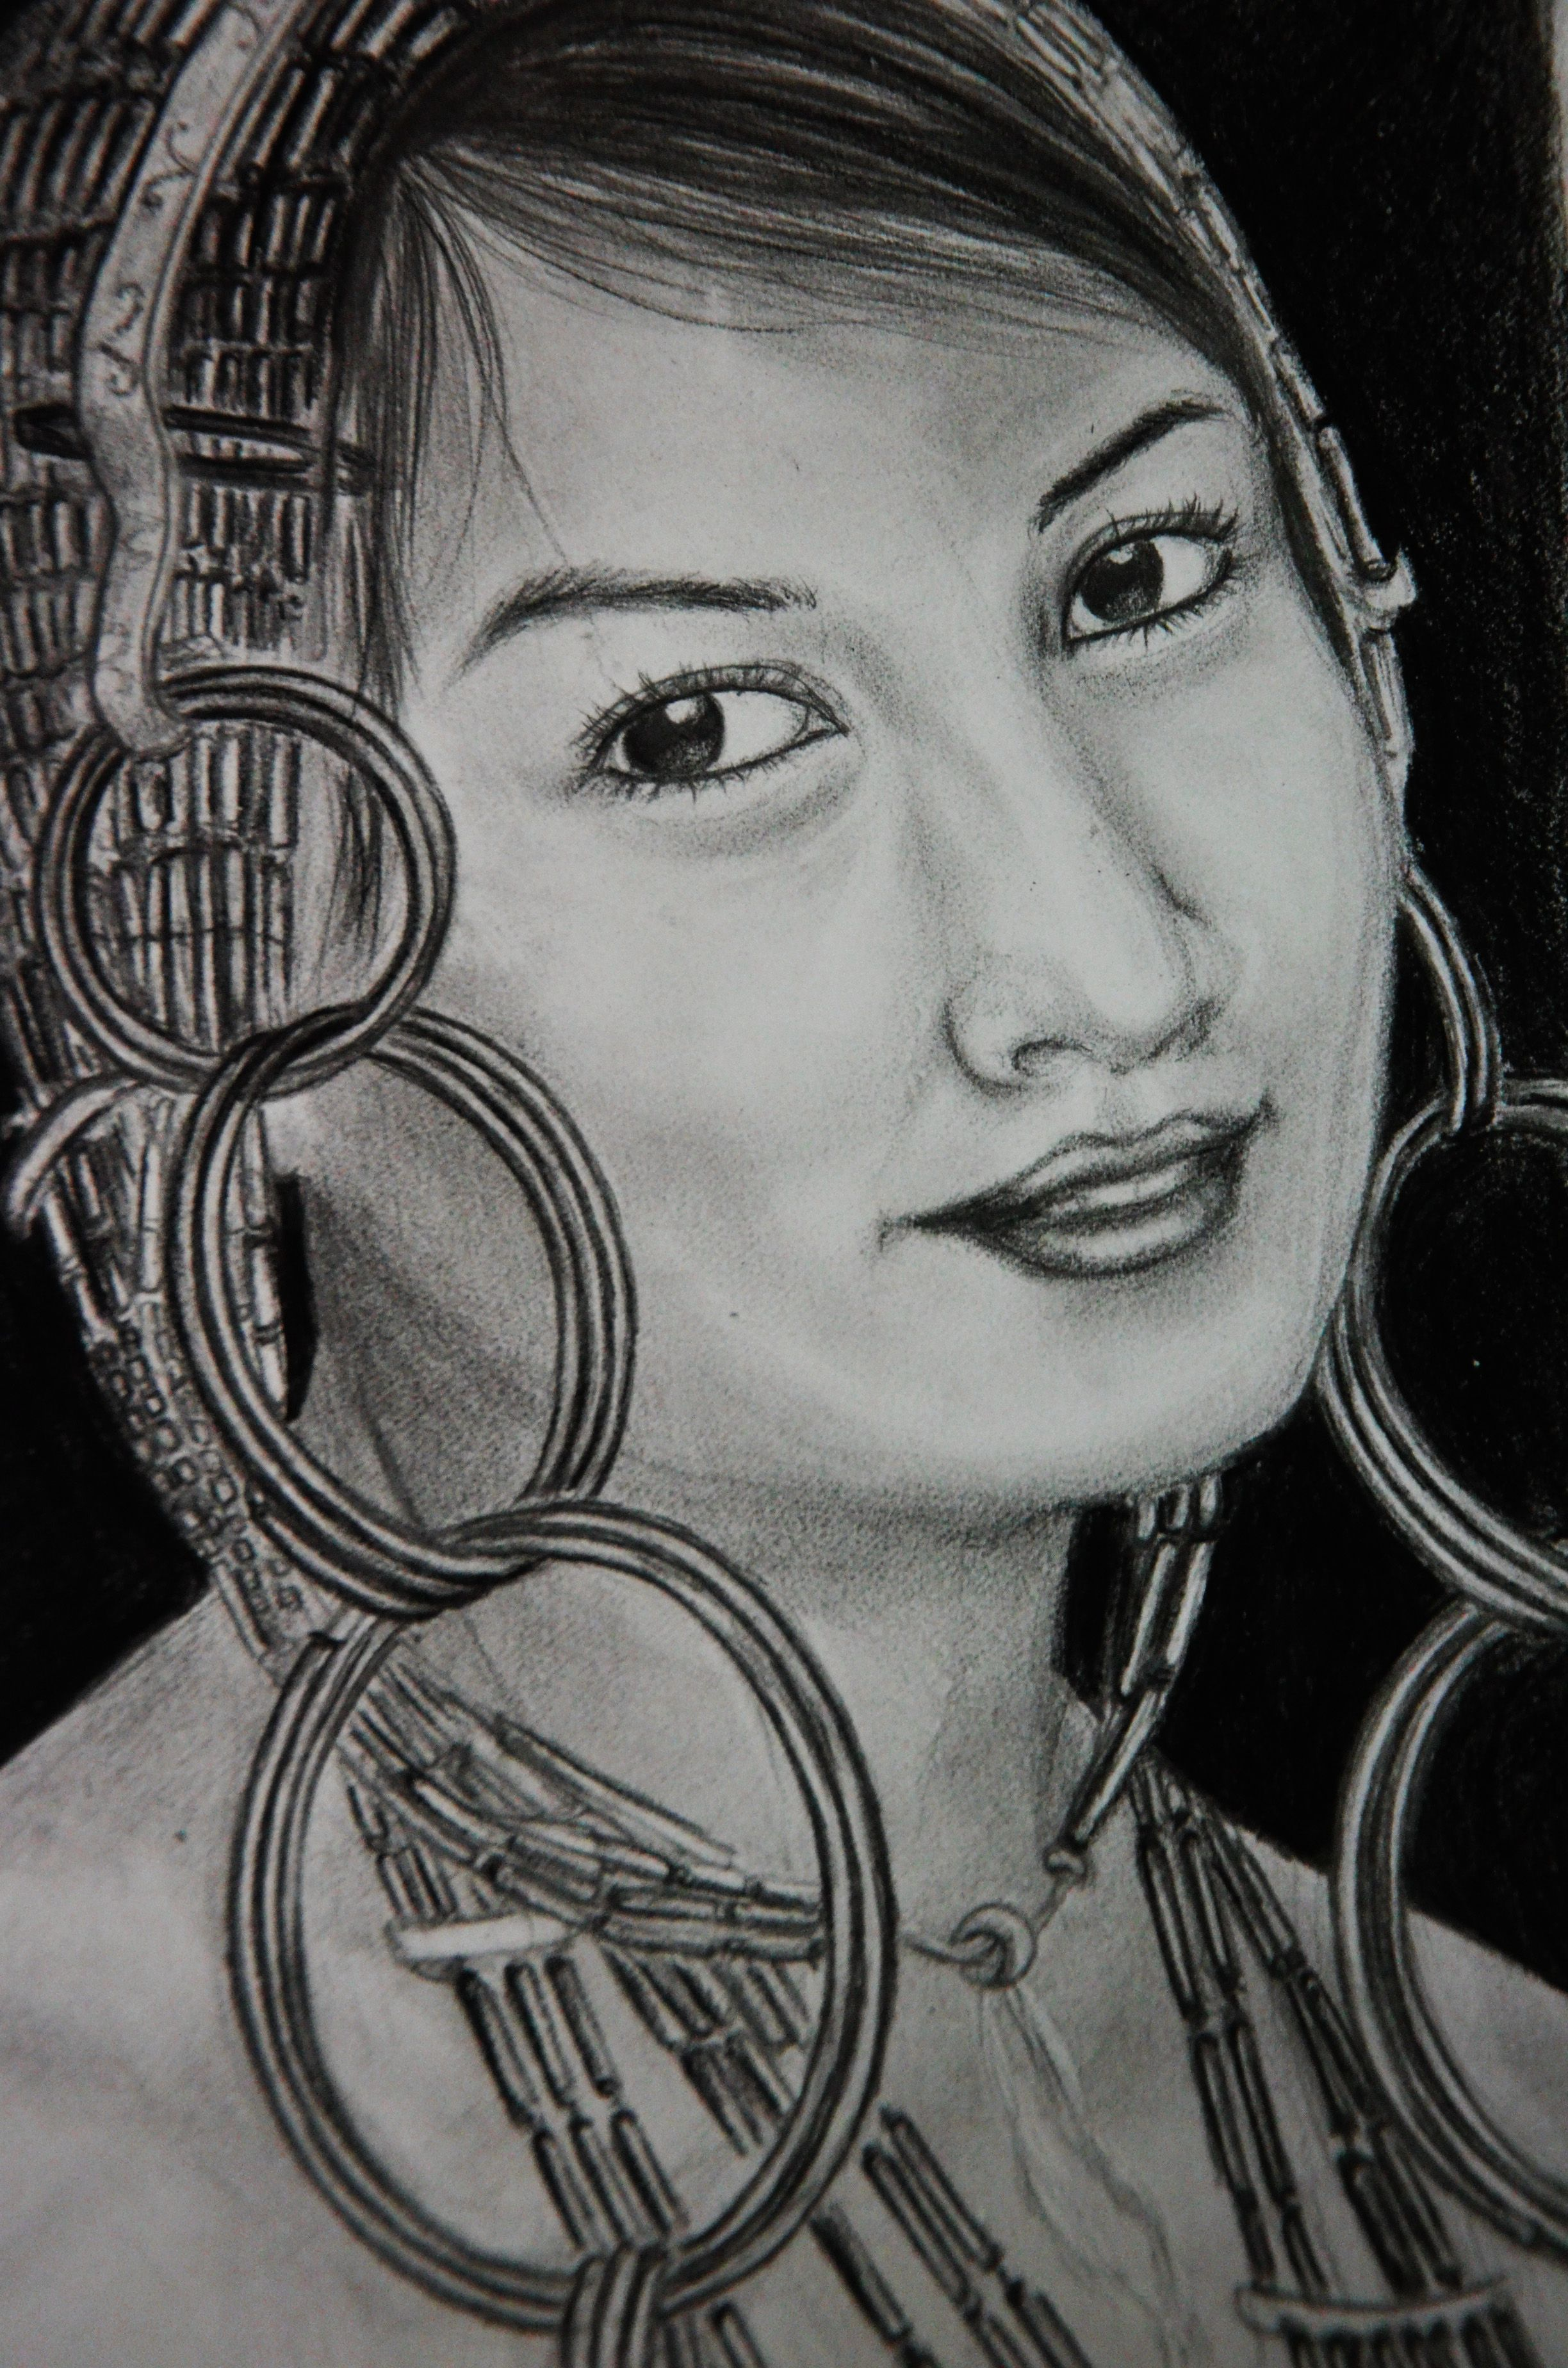 A tangkhul lady in traditional attire traditional lady sketches painting drawings